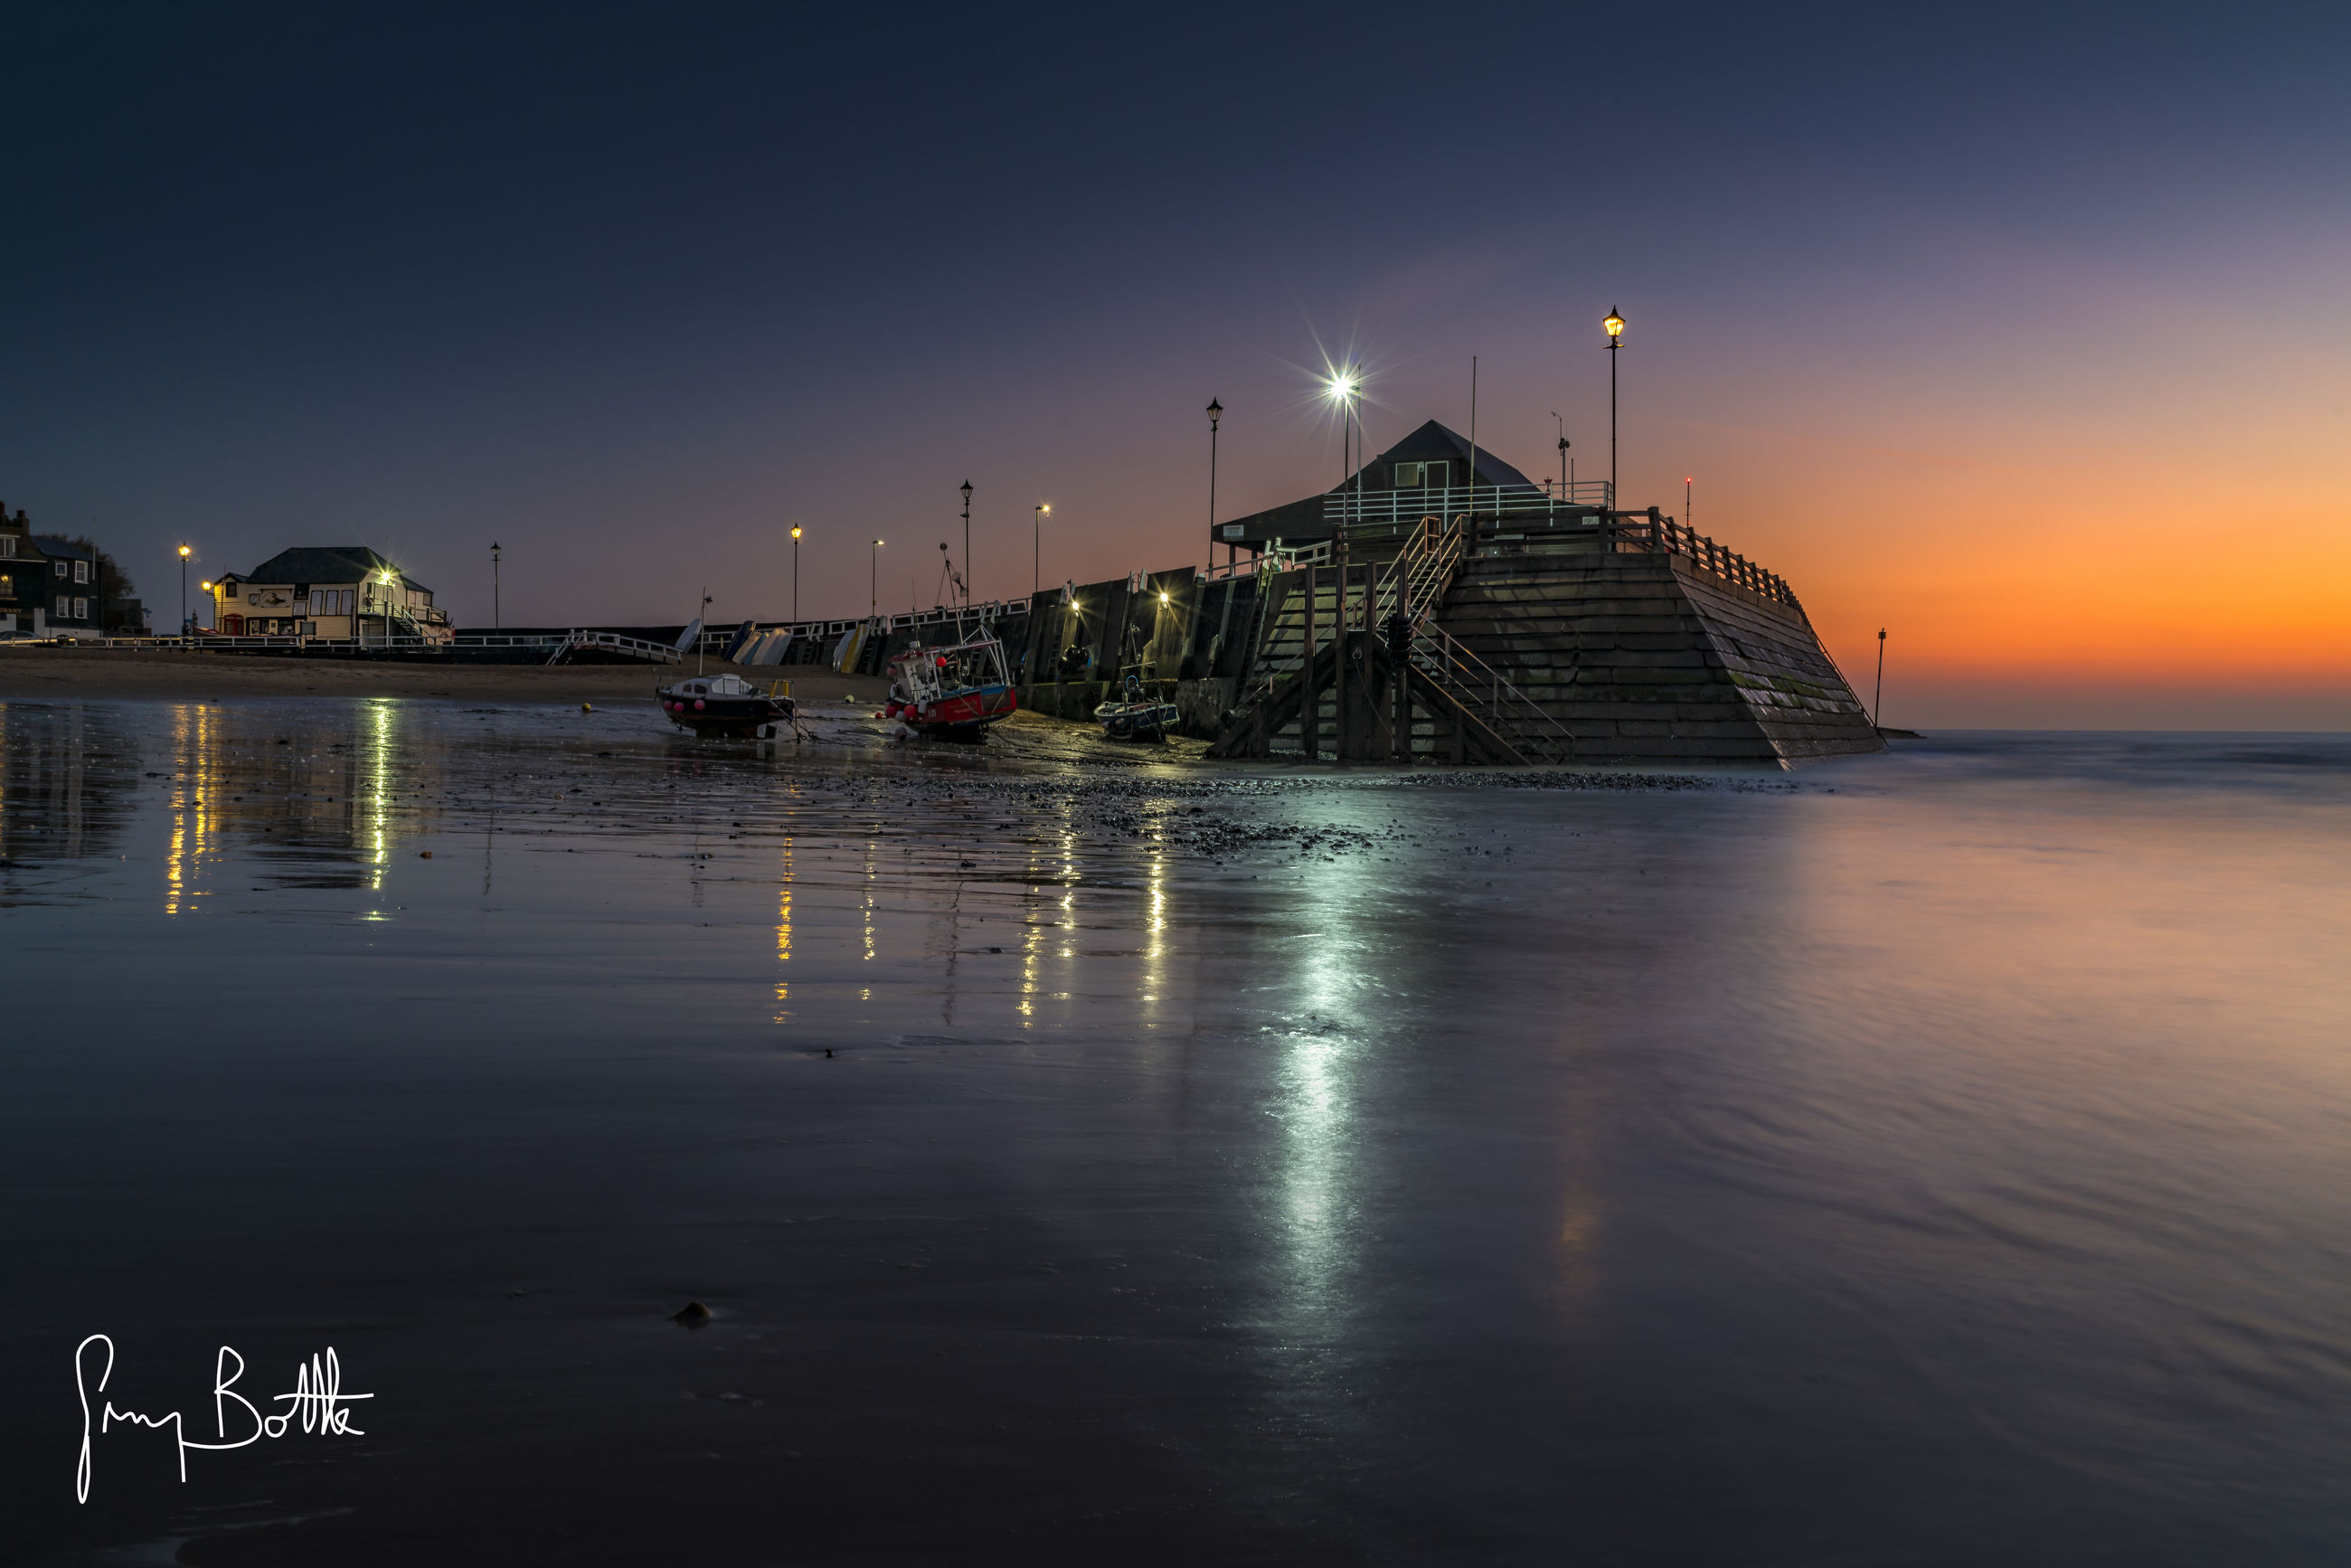 water, sea, illuminated, reflection, architecture, beach, sky, outdoors, building exterior, sunset, no people, nature, night